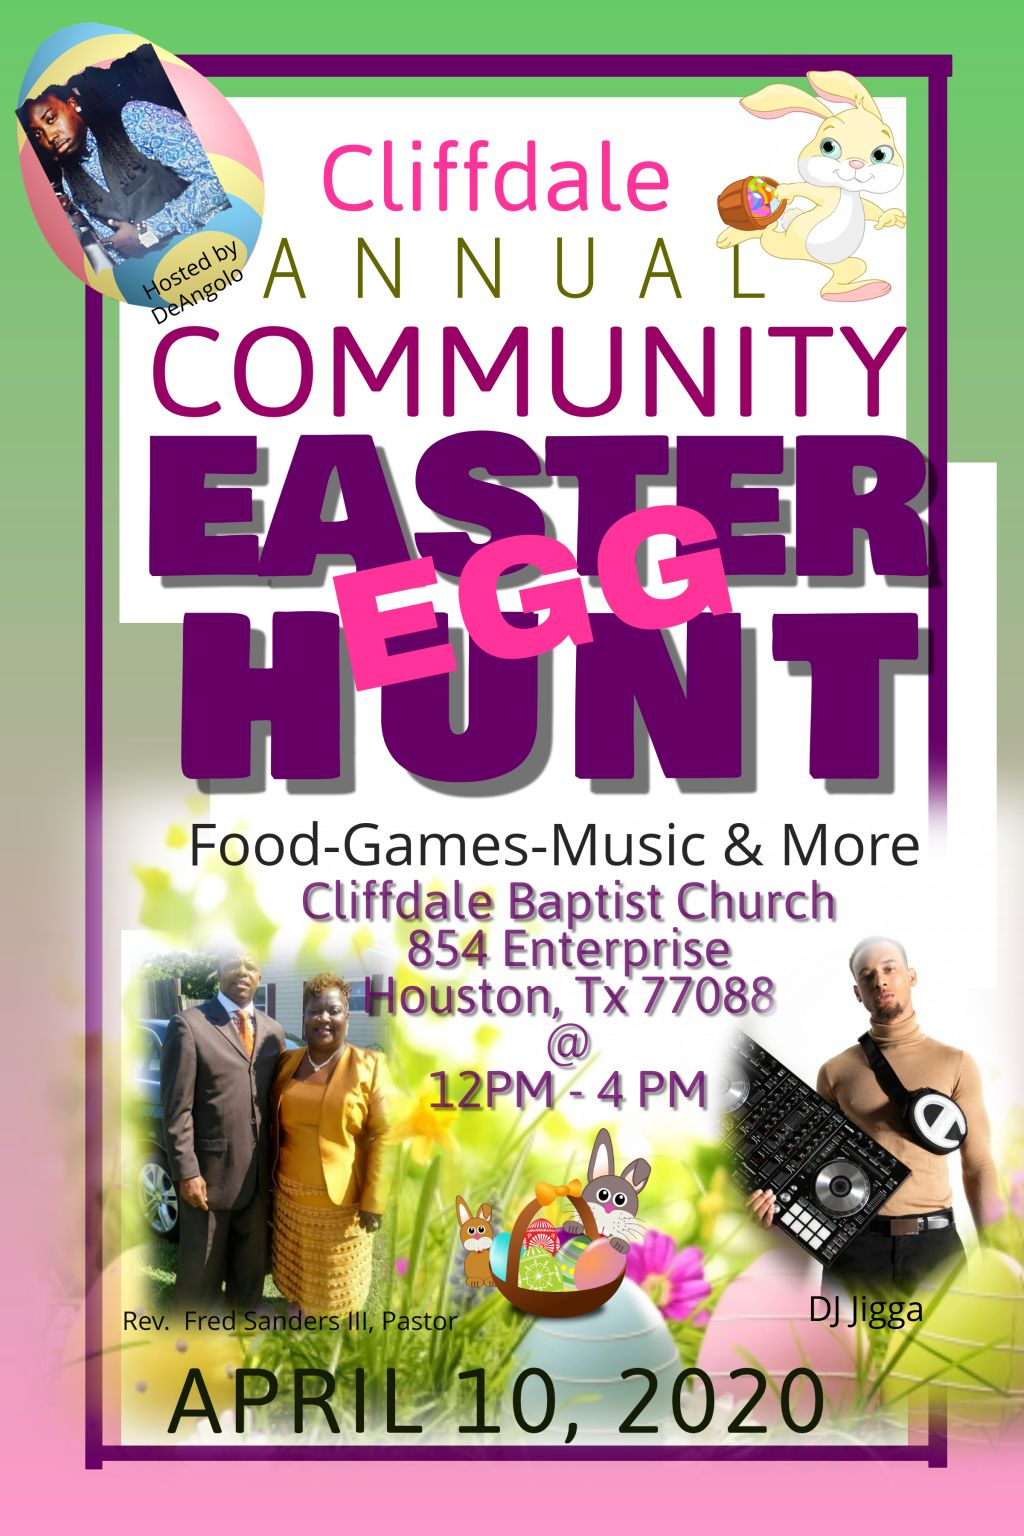 Cliffdale Annual Community Easter Egg Hunt